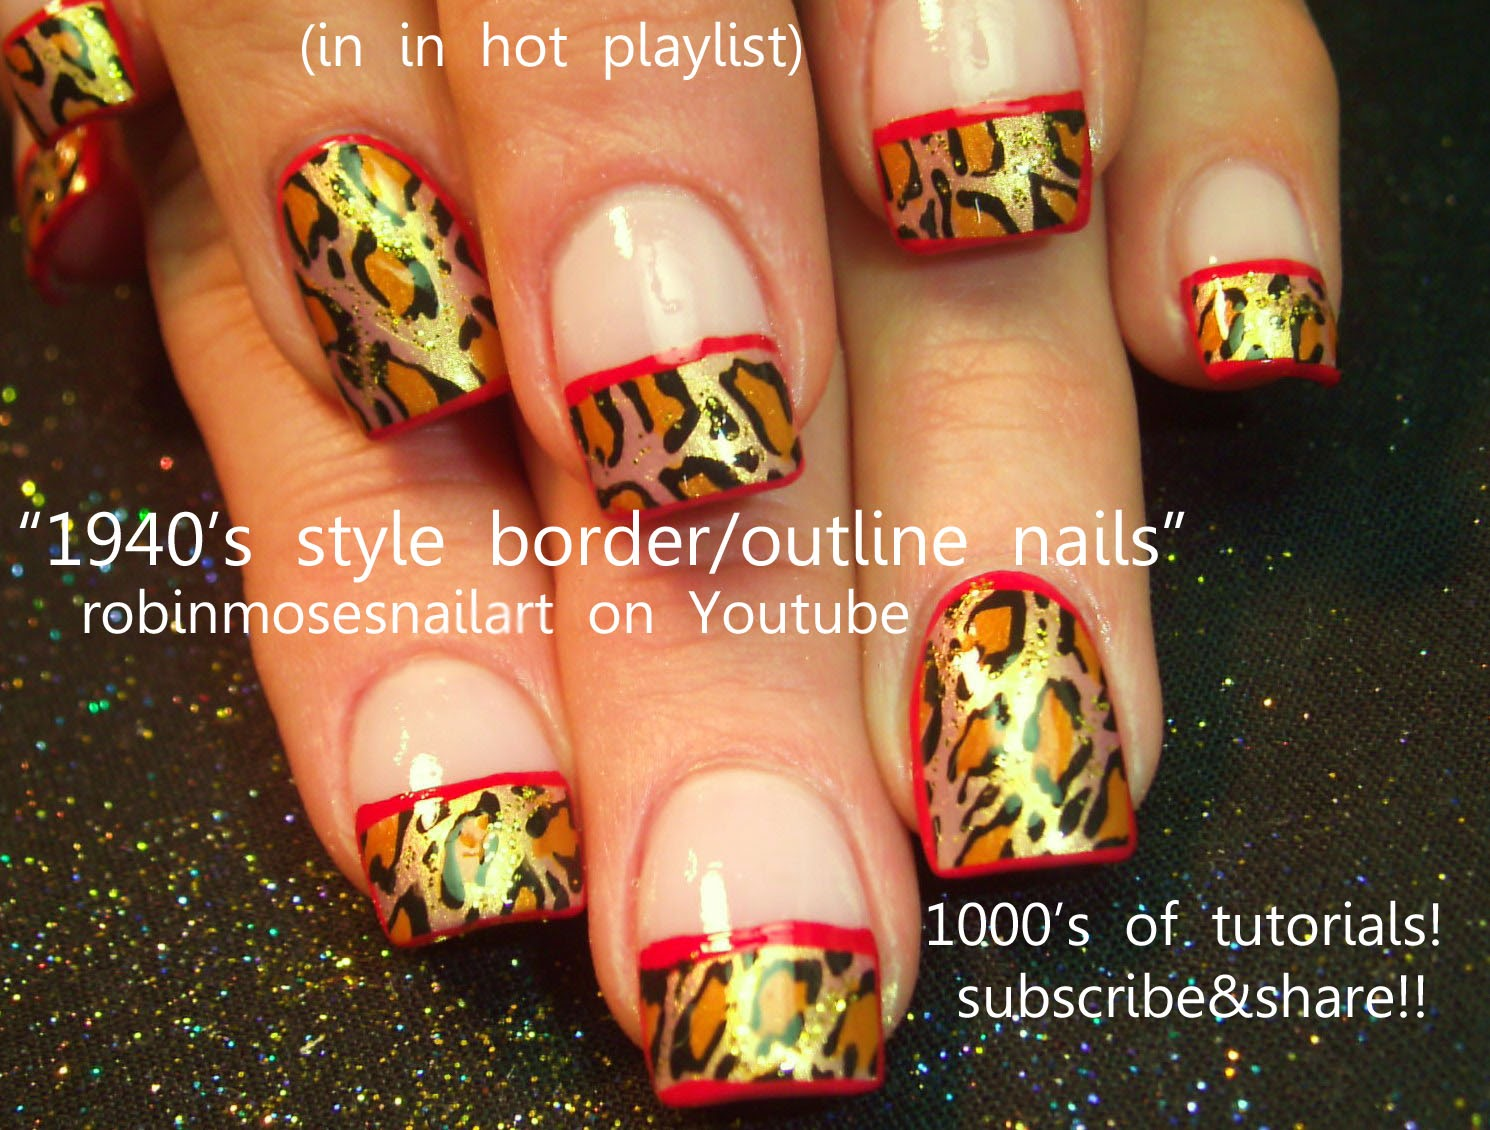 Robin moses nail art february 2014 nail art play list of over 100 different hot designs prinsesfo Gallery